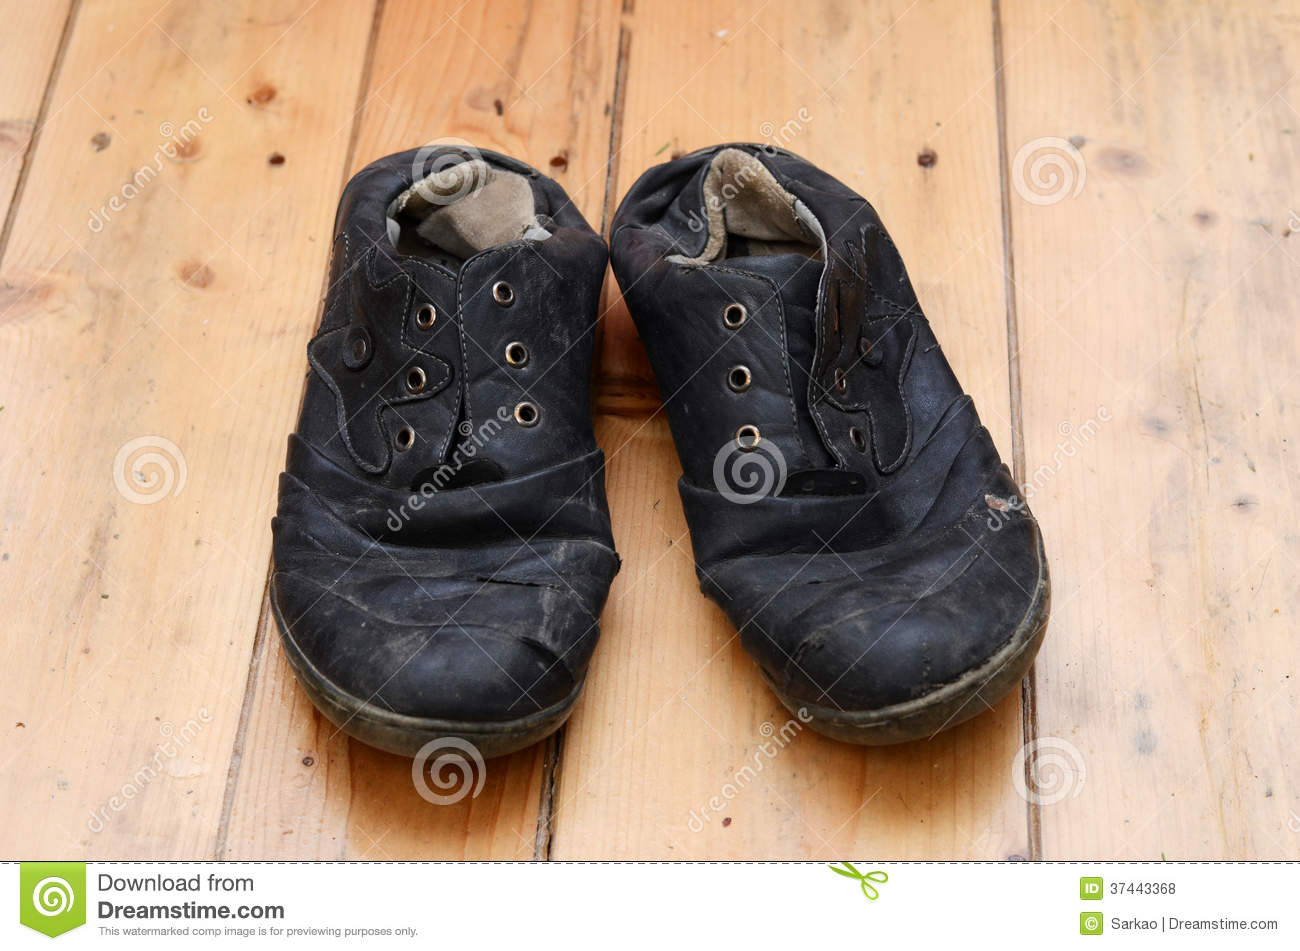 Ugly shoes stock photo. Image of floor